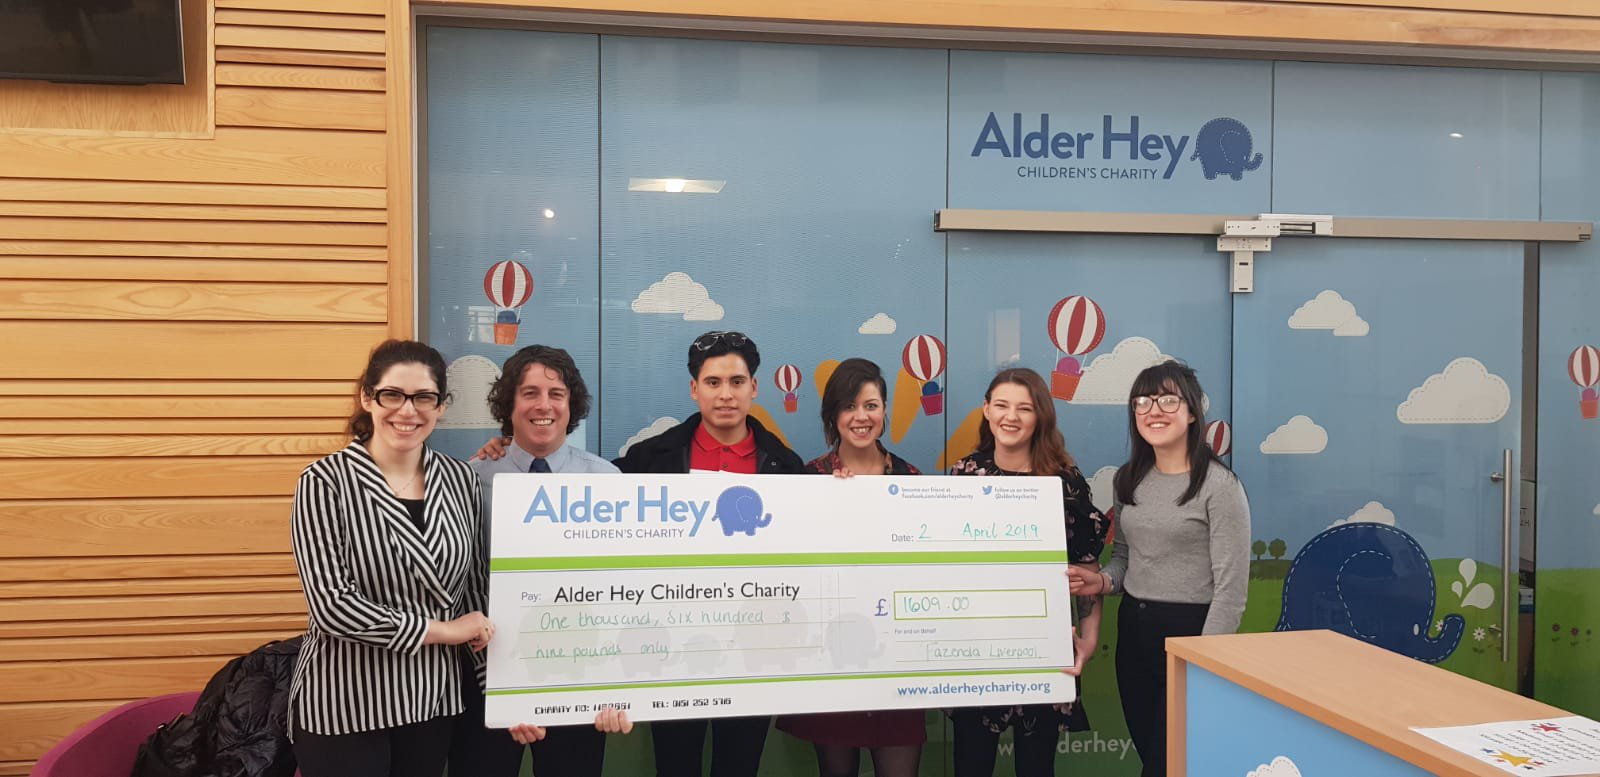 Julia with some of the Liverpool Team at Alder Hey